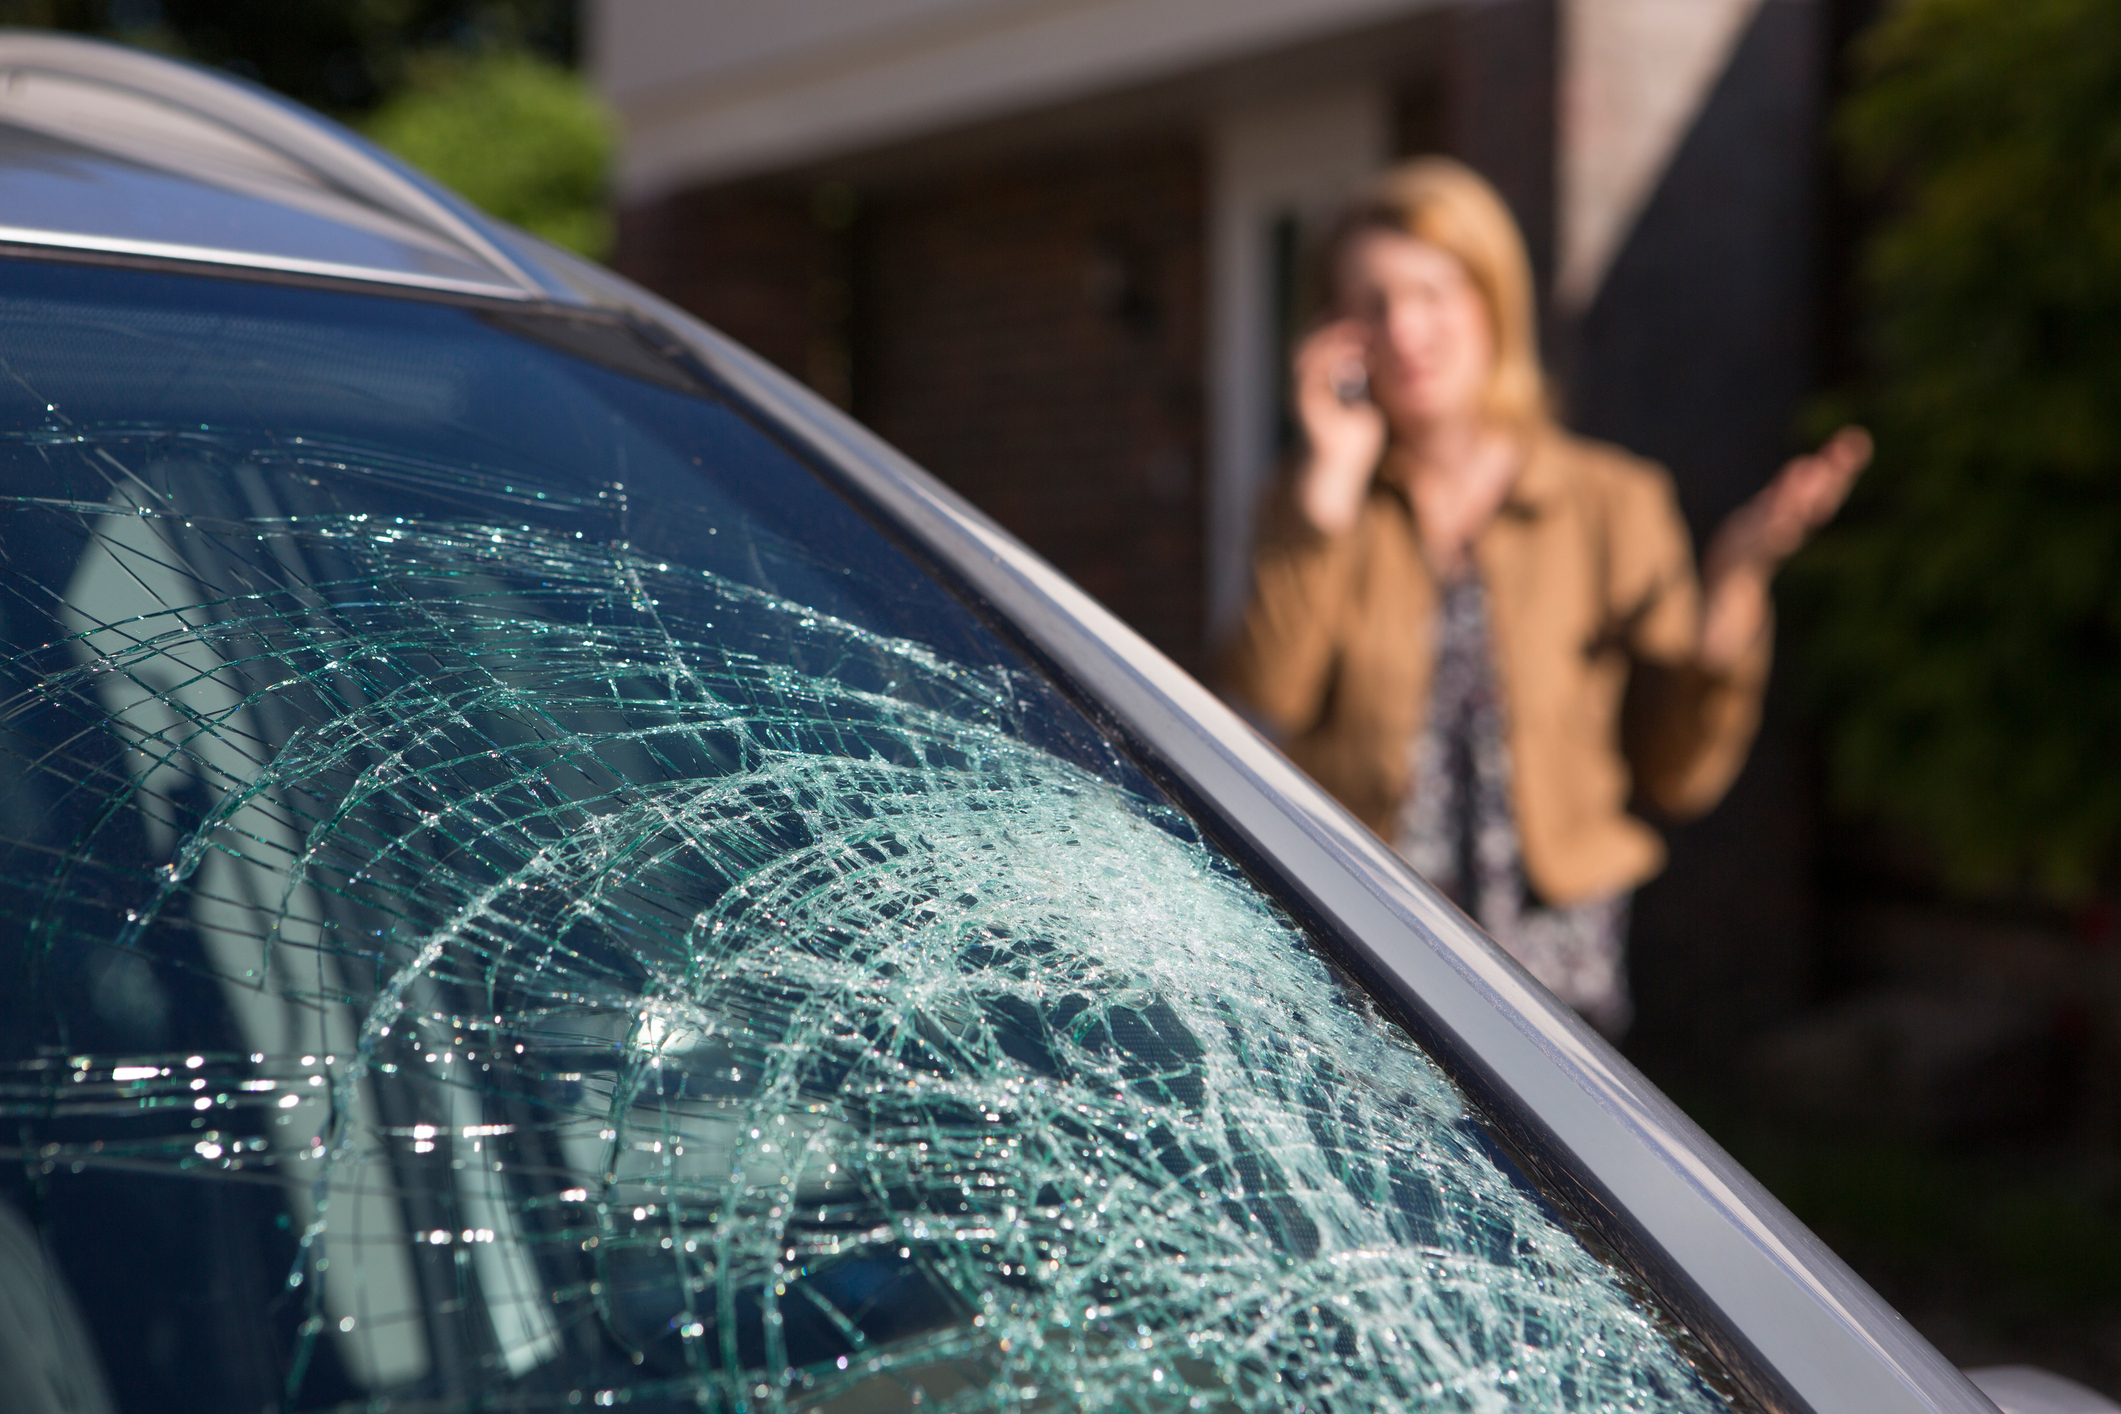 Woman Phoning For Glass Repair Help After Car Windshield Has Broken